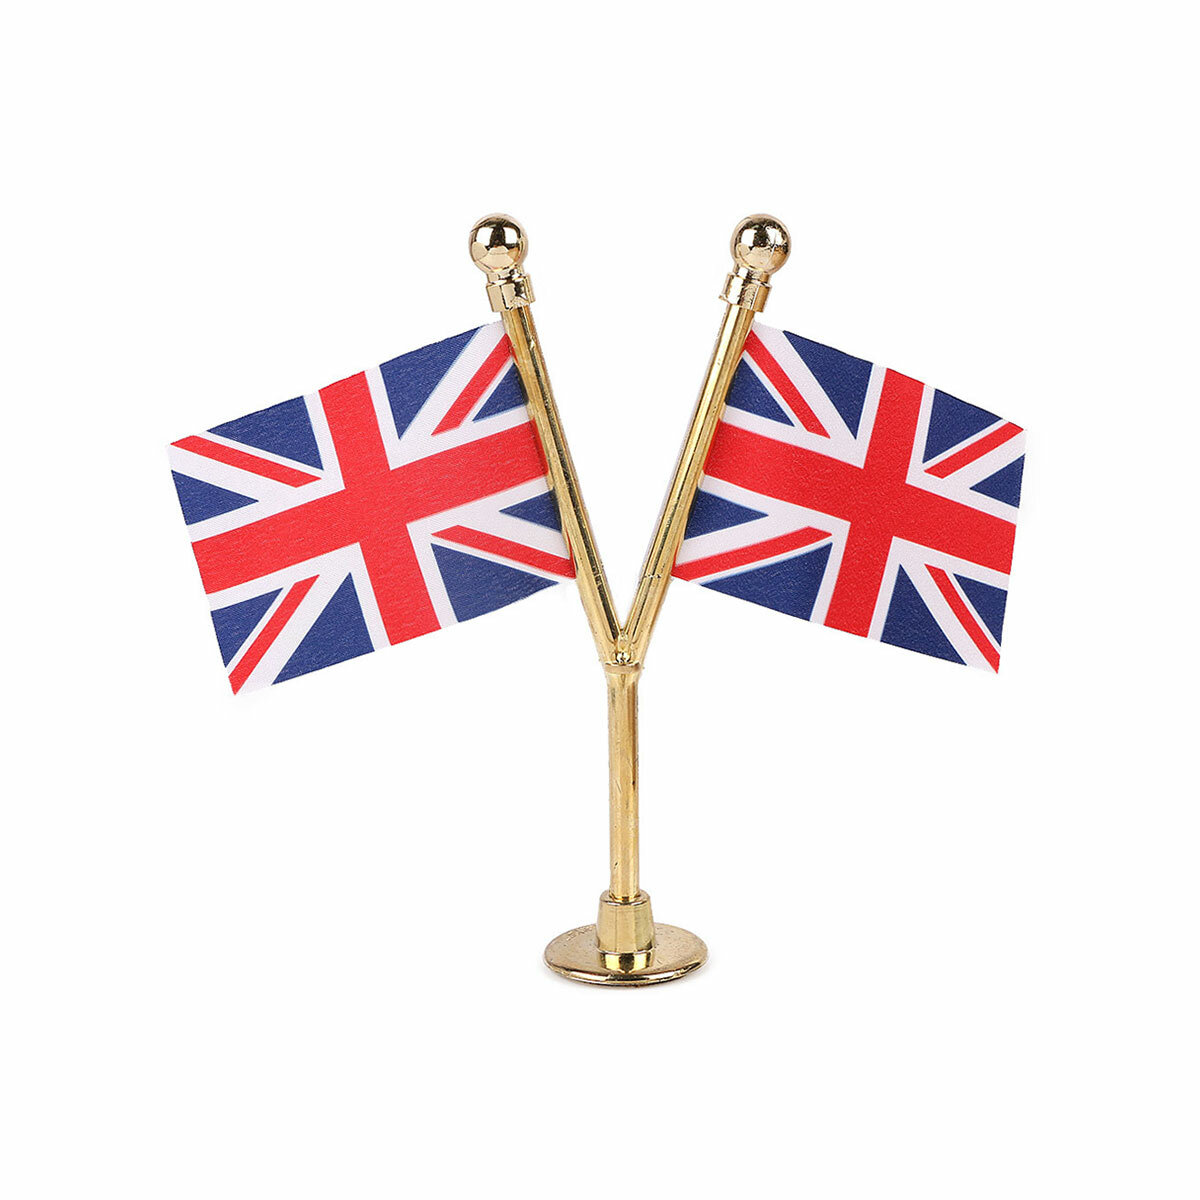 dual uk car dashboard flags with a gold plated plastic stand / base